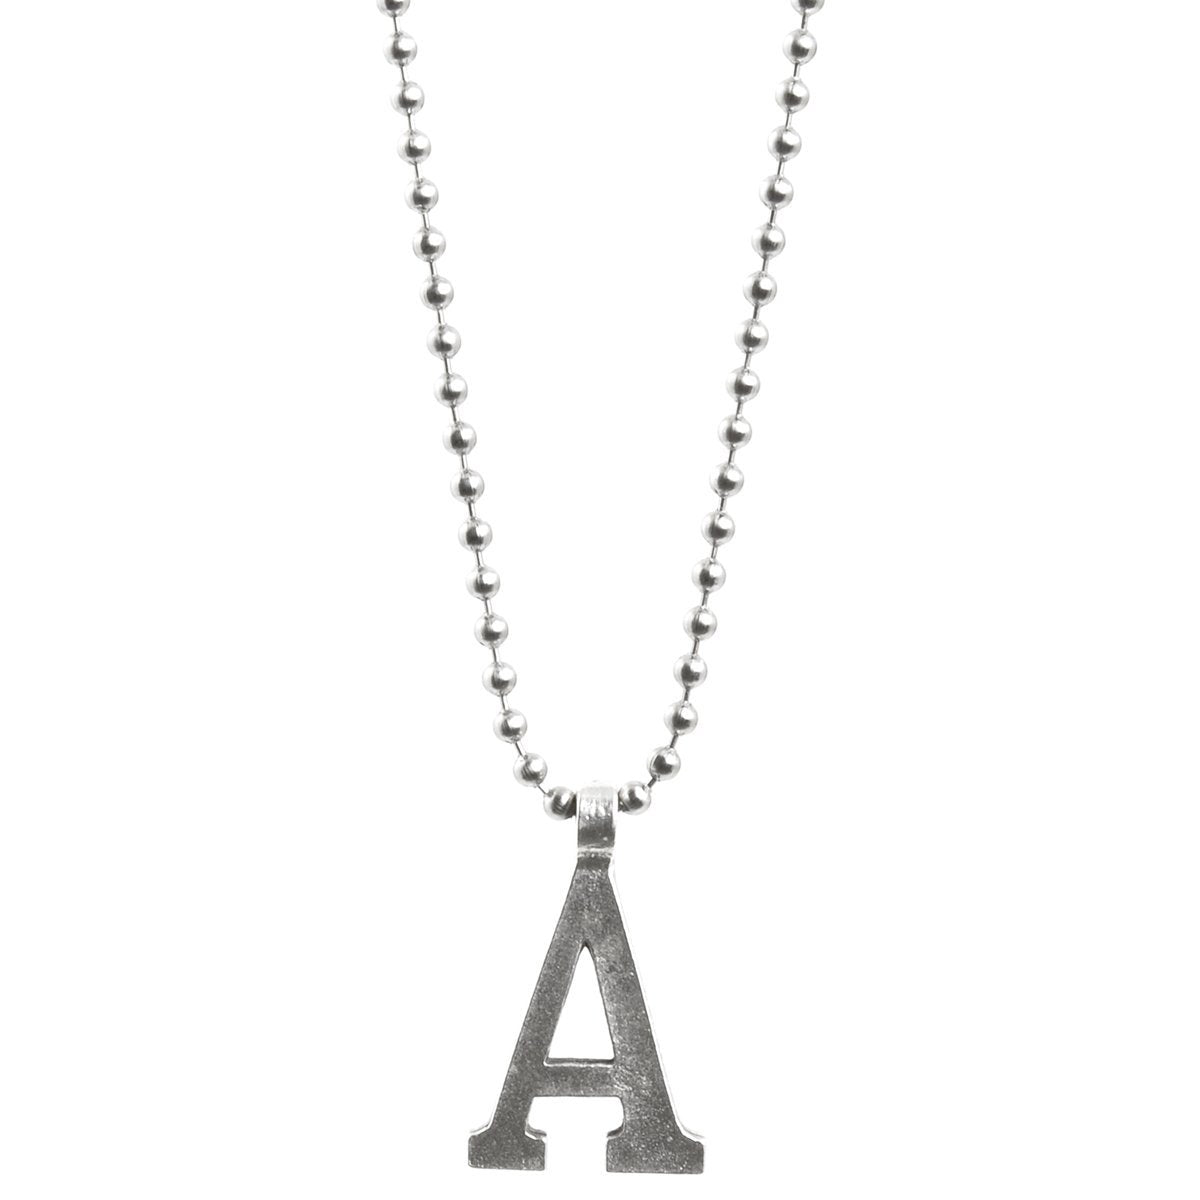 Finished Jewelry-Simple-Letter A-Antique Silver Ball Chain Necklace